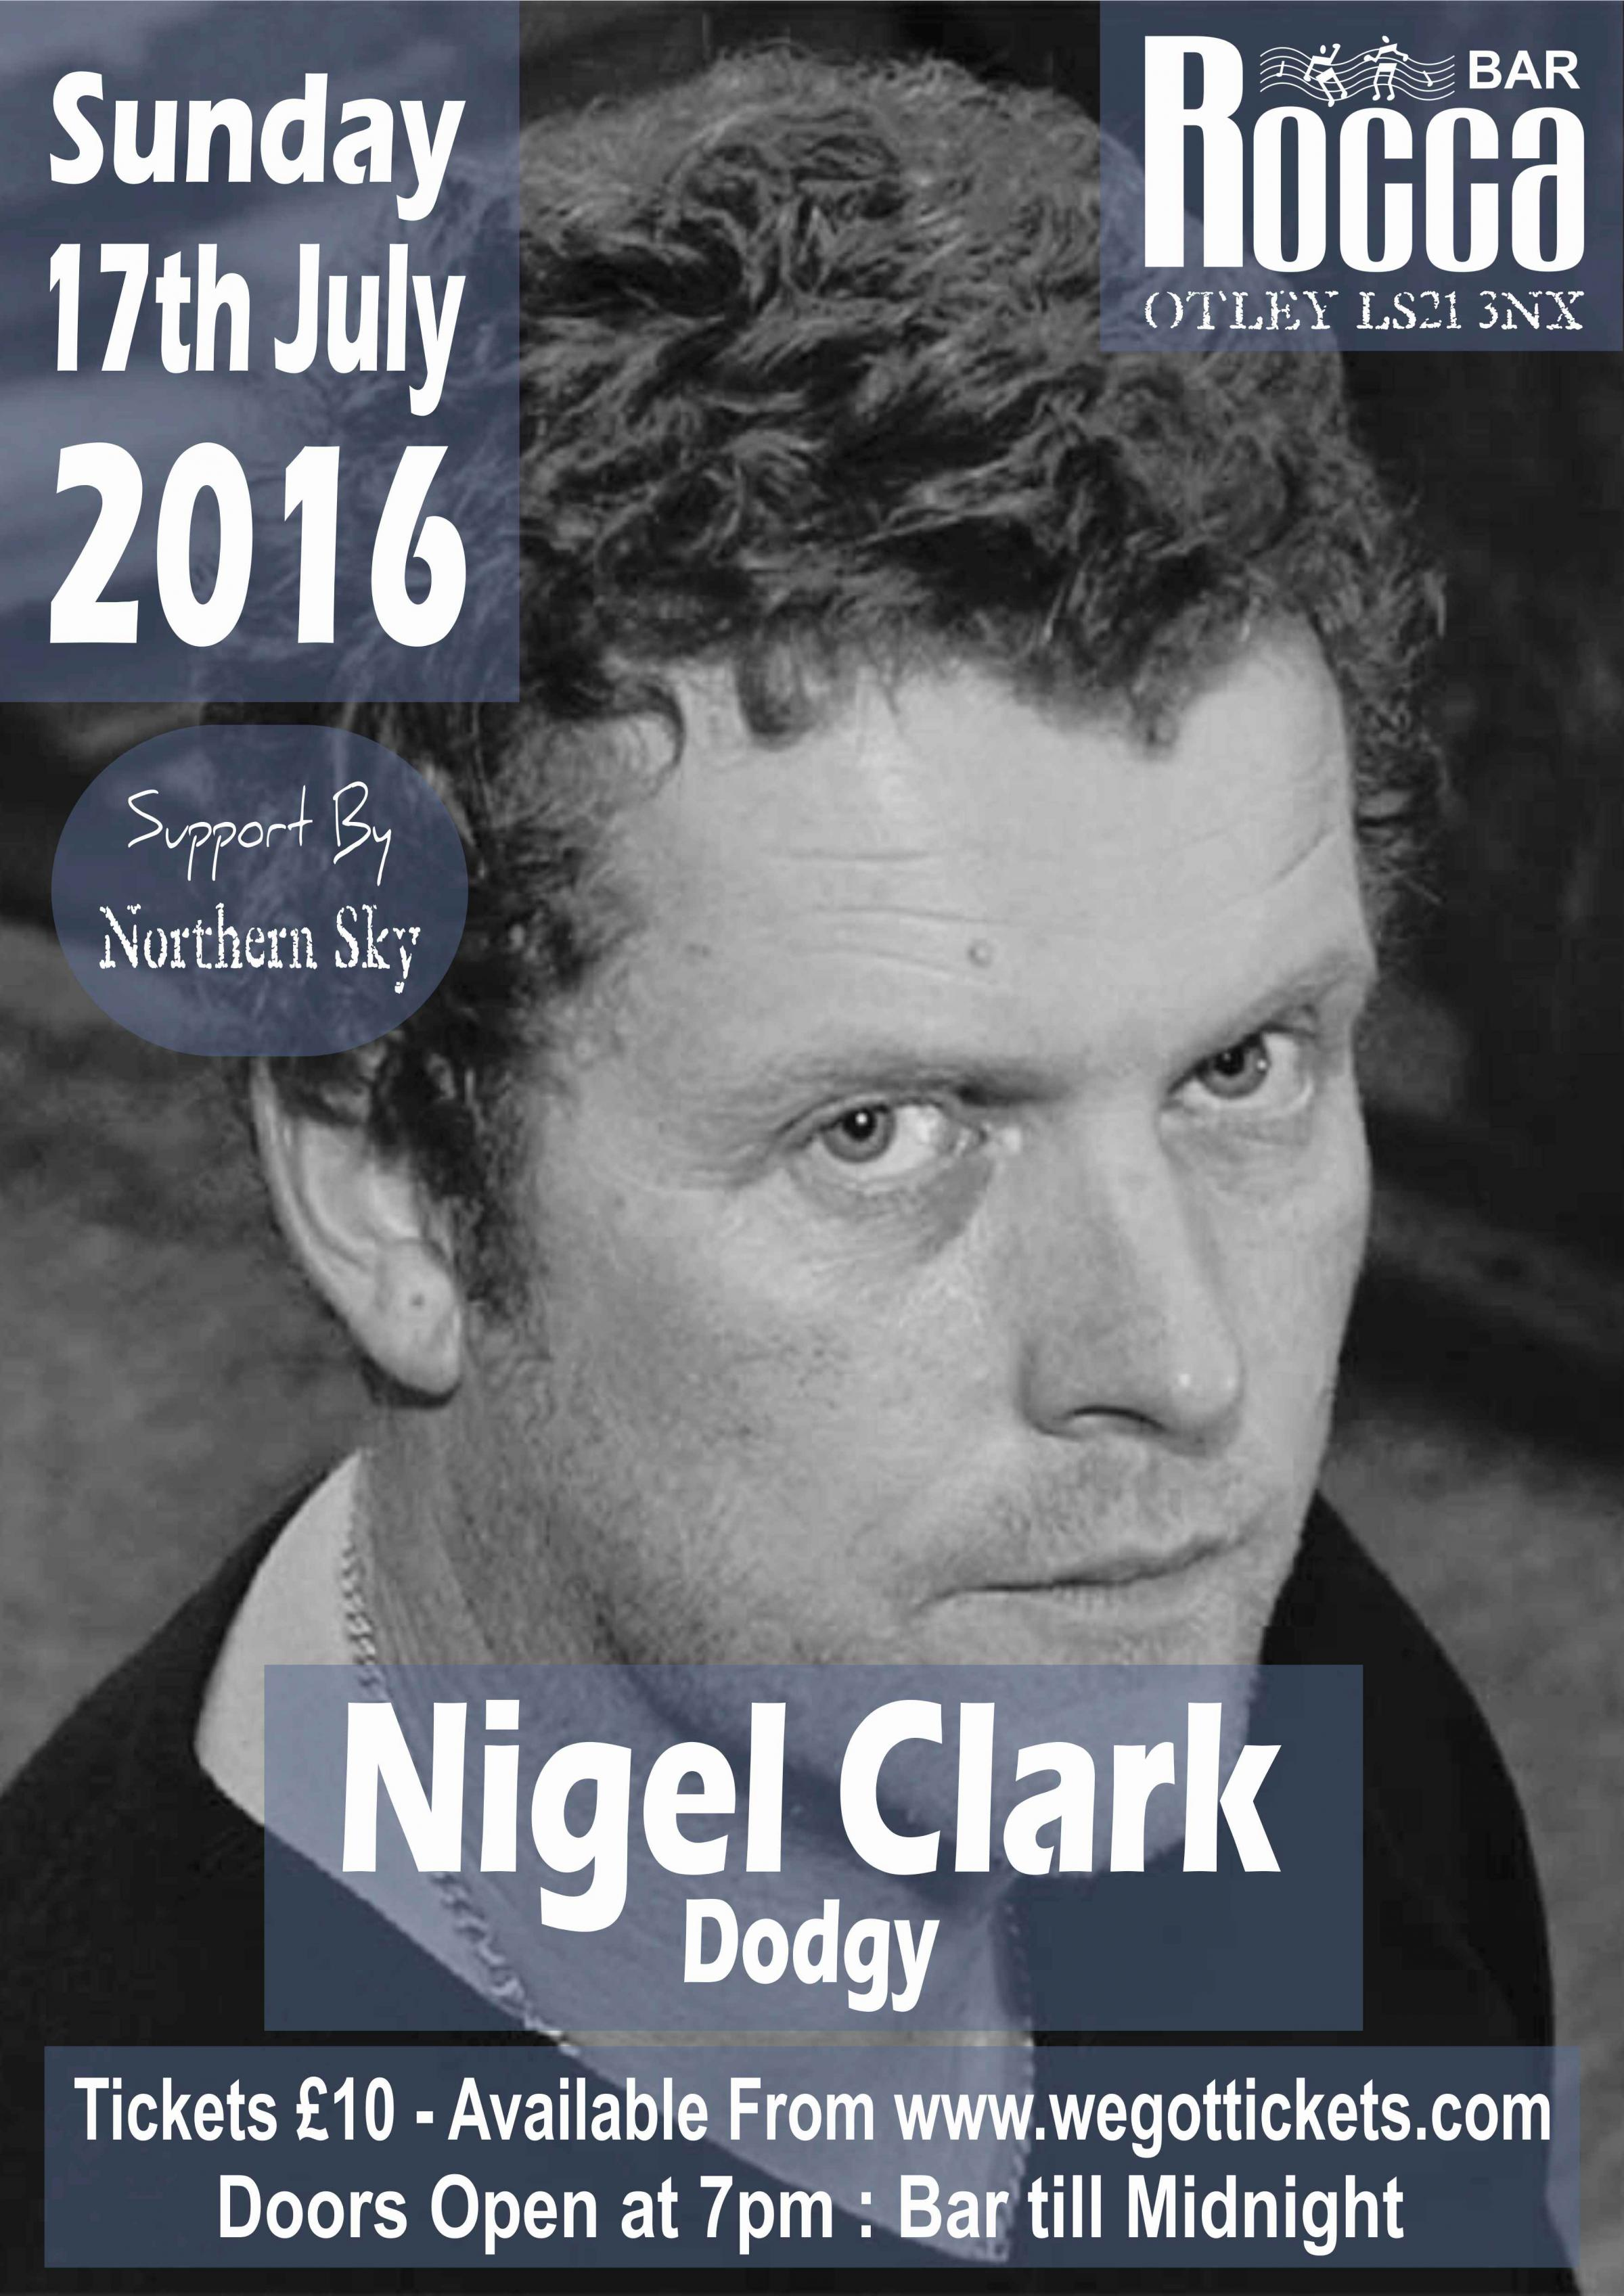 Nigel Clark (Dodgy) Live at Rocca